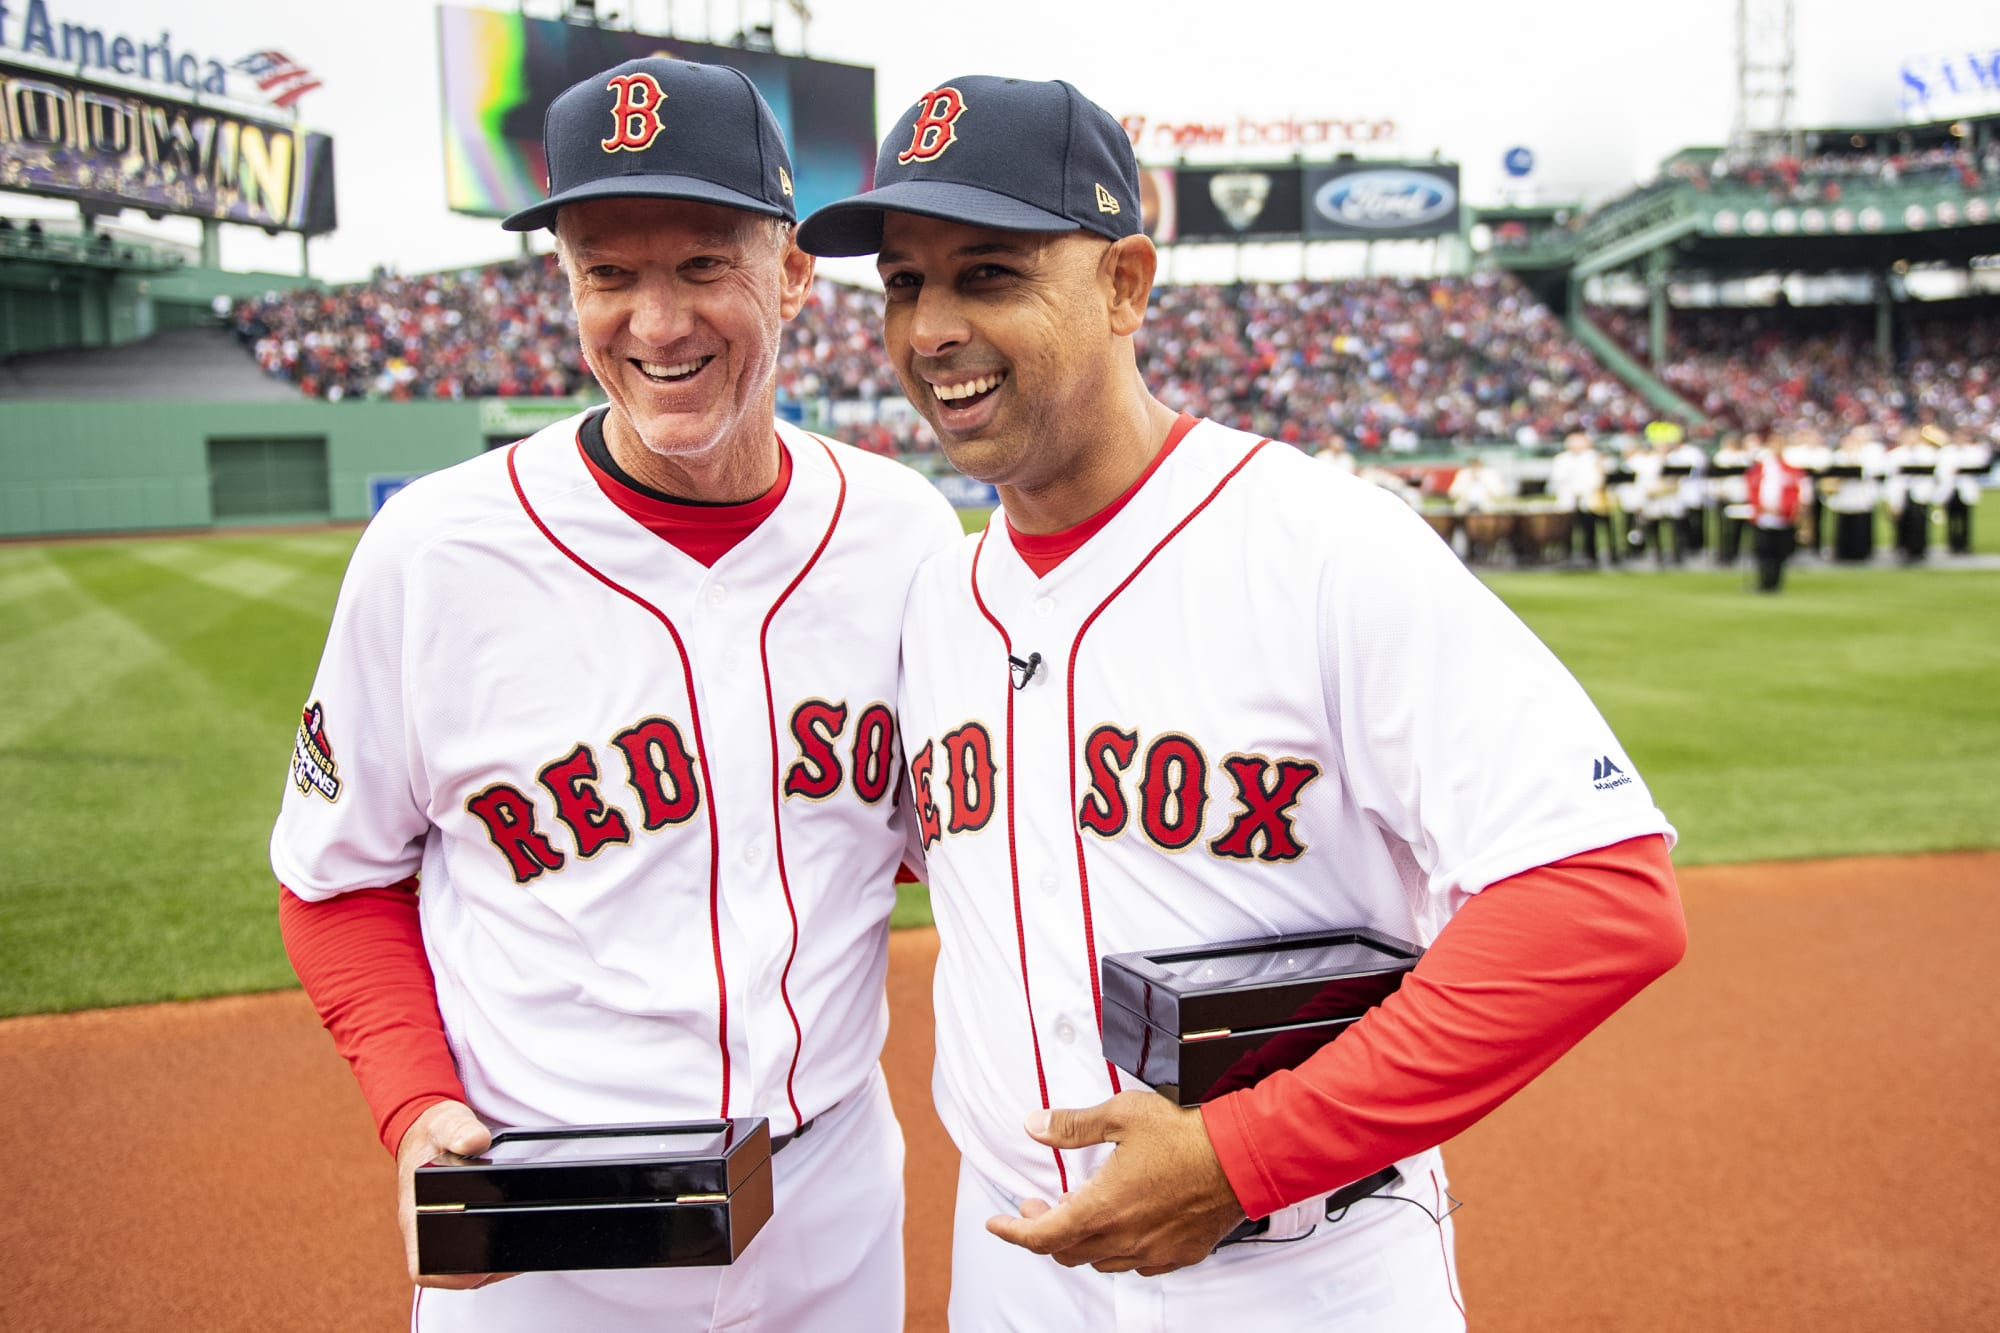 Red Sox manager Ron Roenicke isn't dwelling on job security